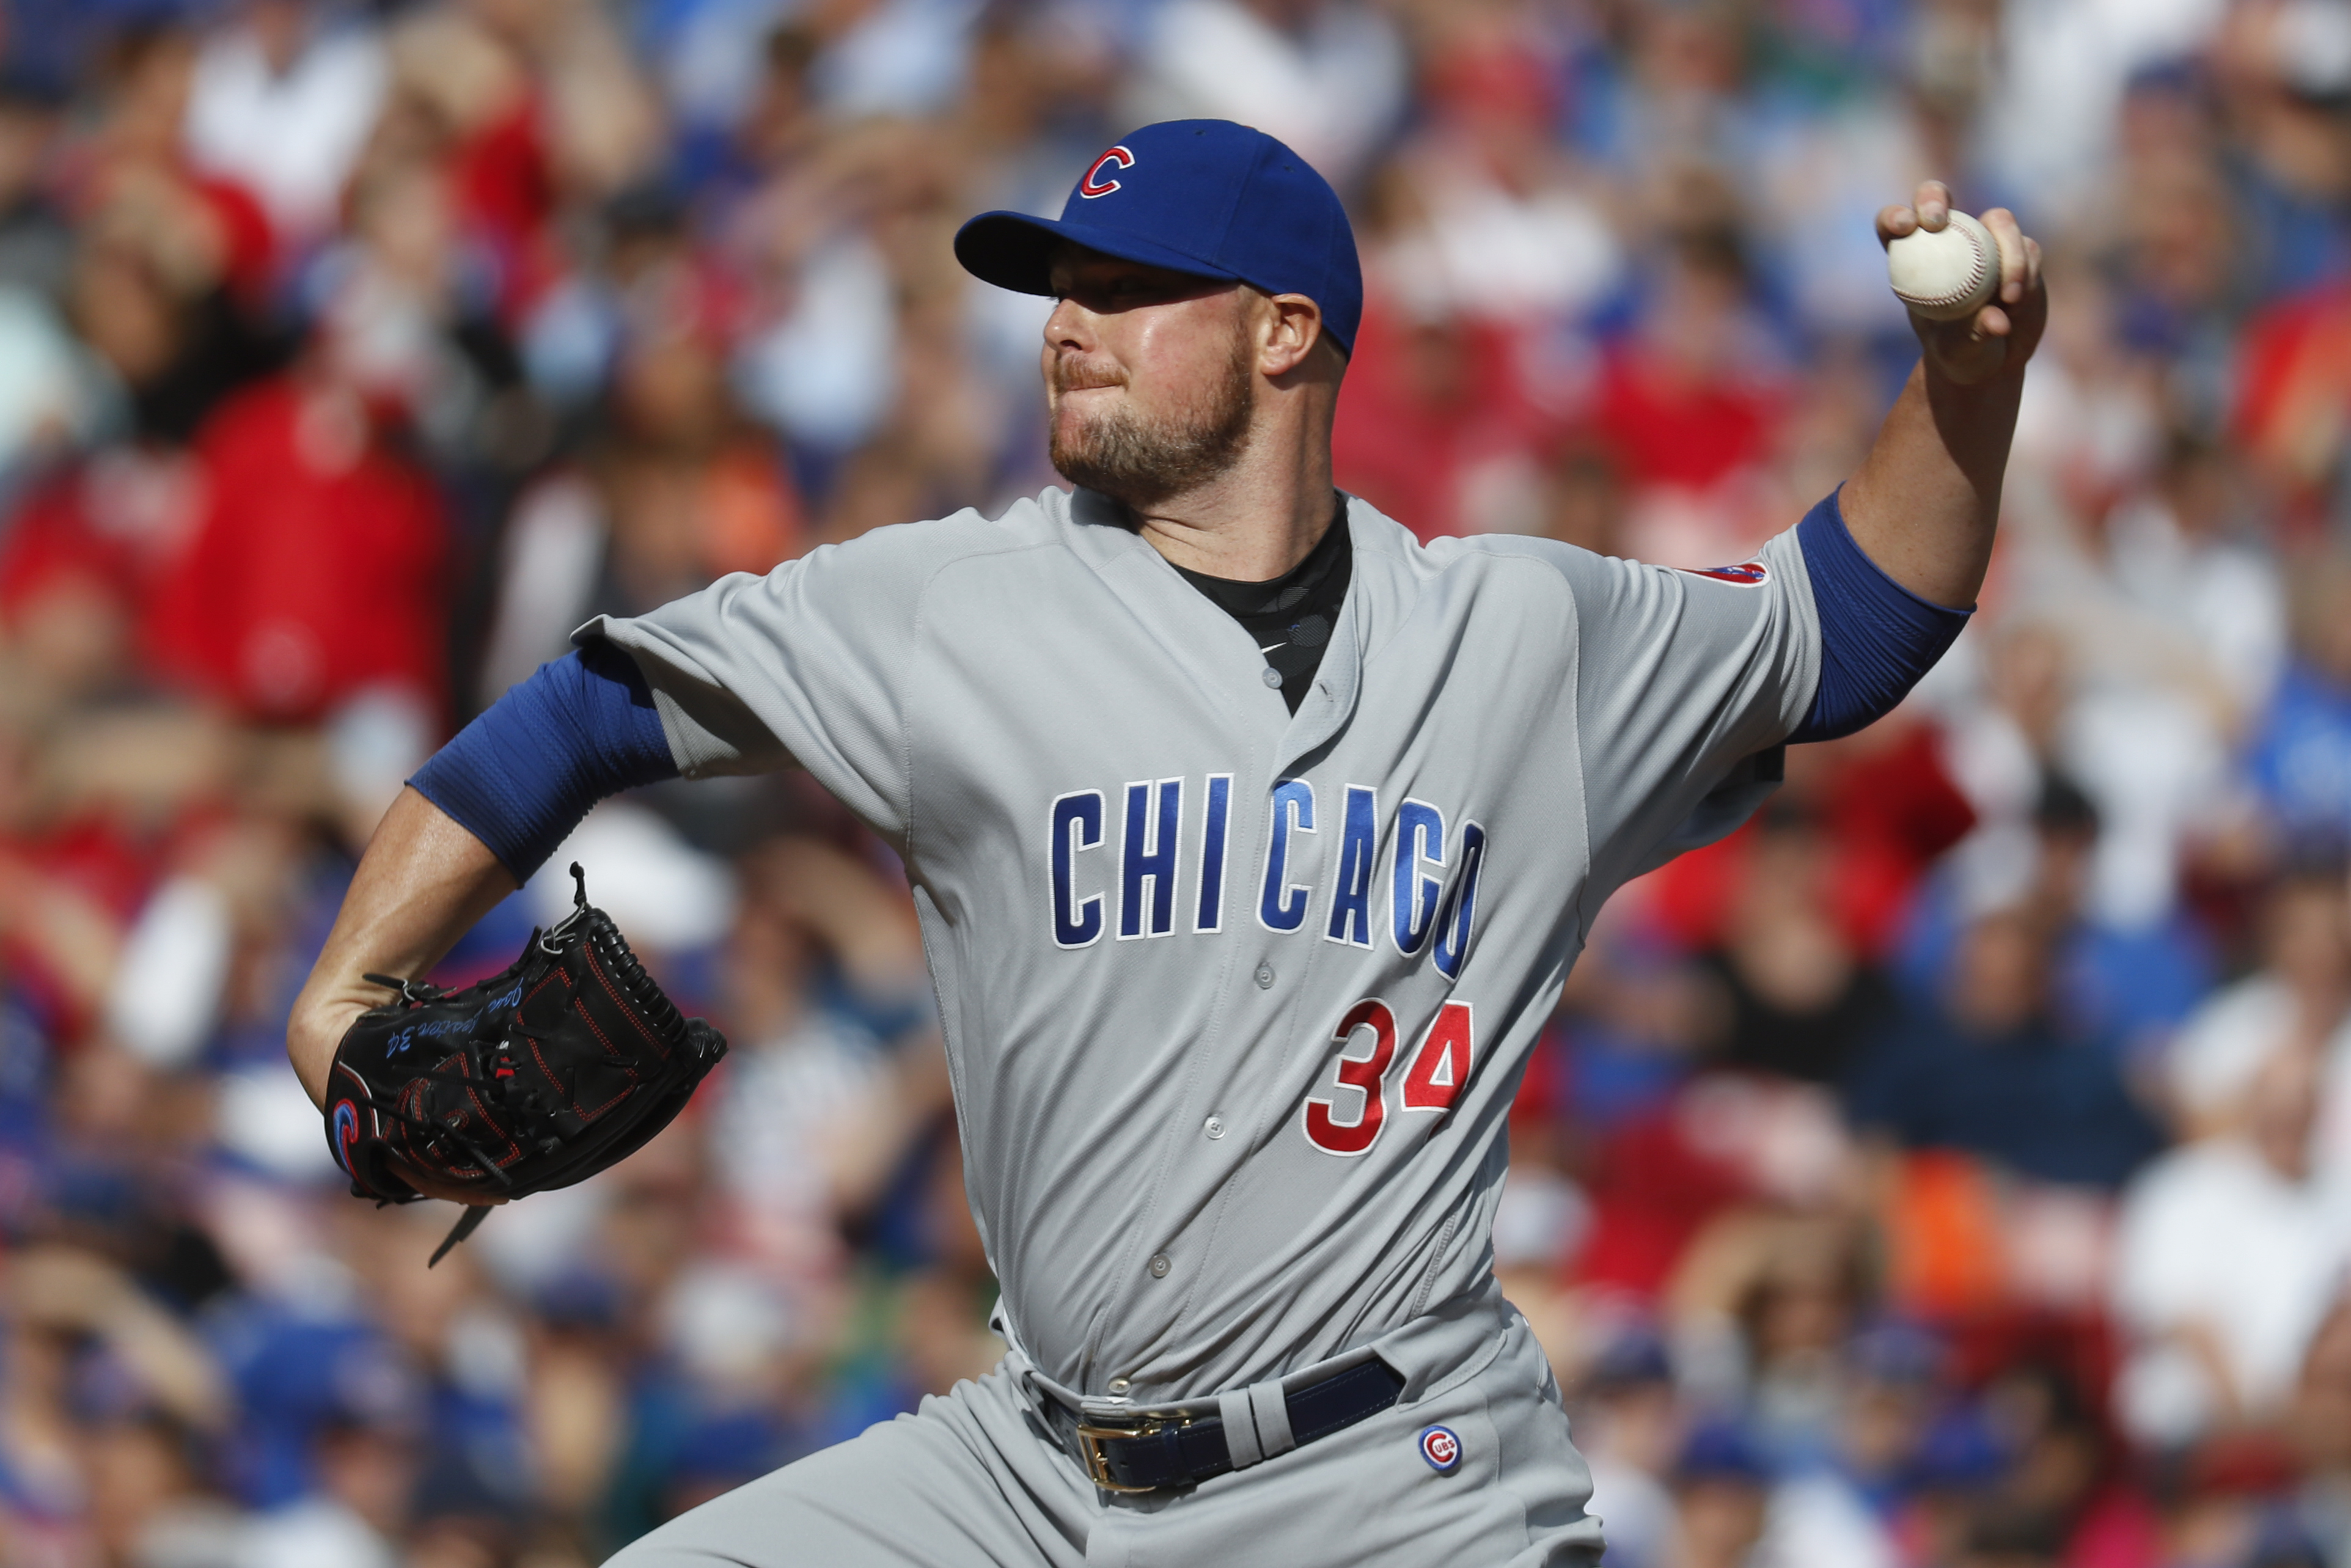 Chicago Cubs starting pitcher Jon Lester throws in the first inning of a baseball game against the Cincinnati Reds, Saturday, Oct. 1, 2016, in Cincinnati. (AP Photo/John Minchillo)